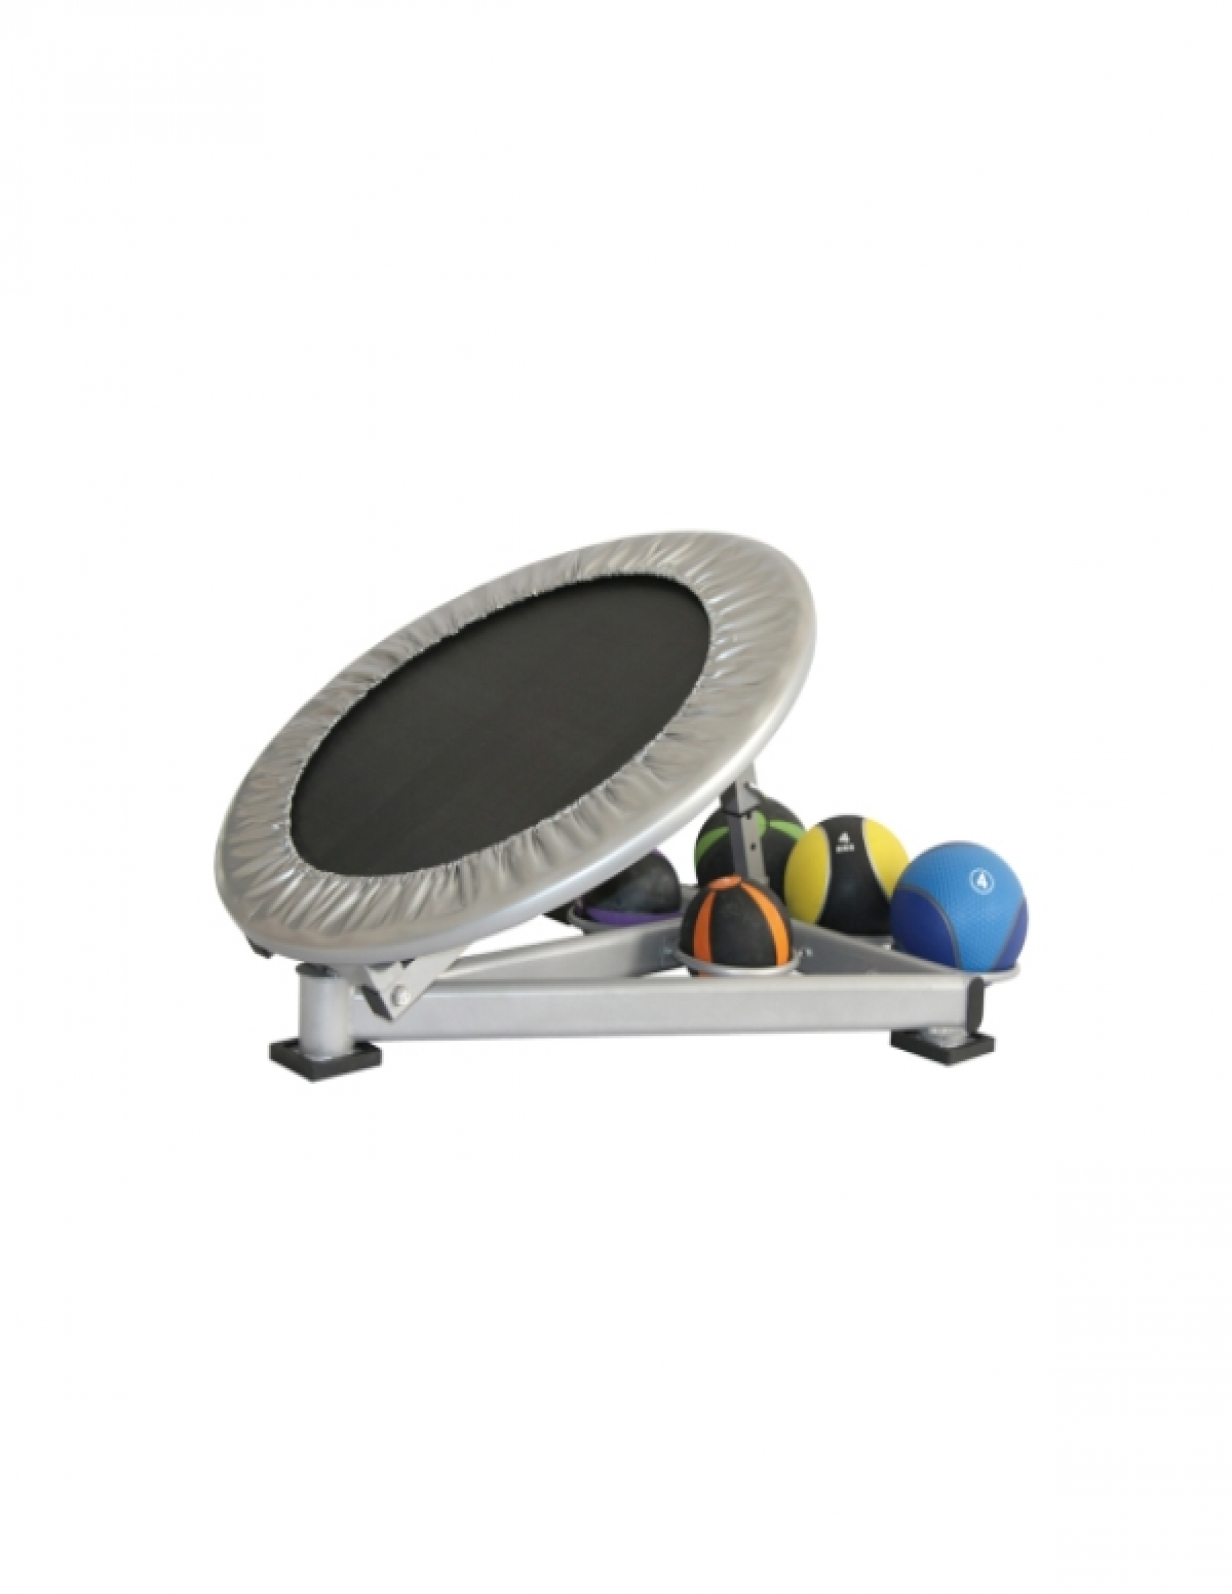 W 6410 MEDICINE BALL RE BOUNDER